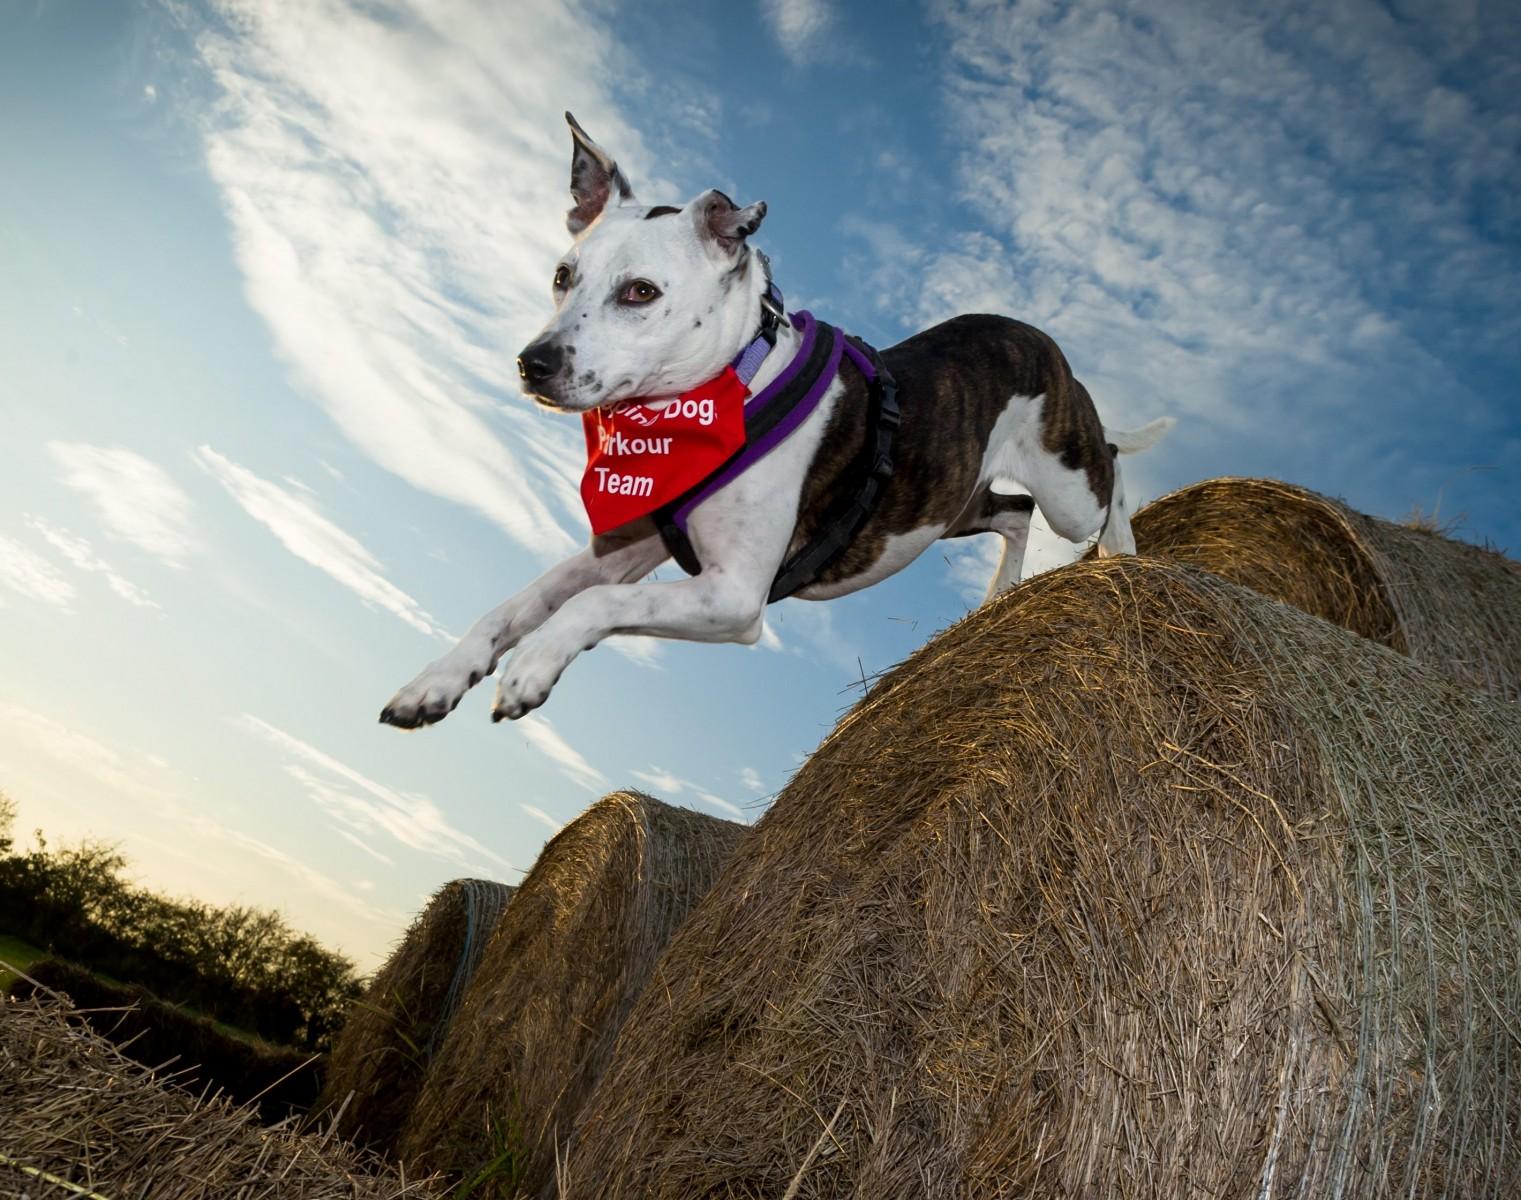 We bet your thrill-seeking dogs would LOVE to do this!